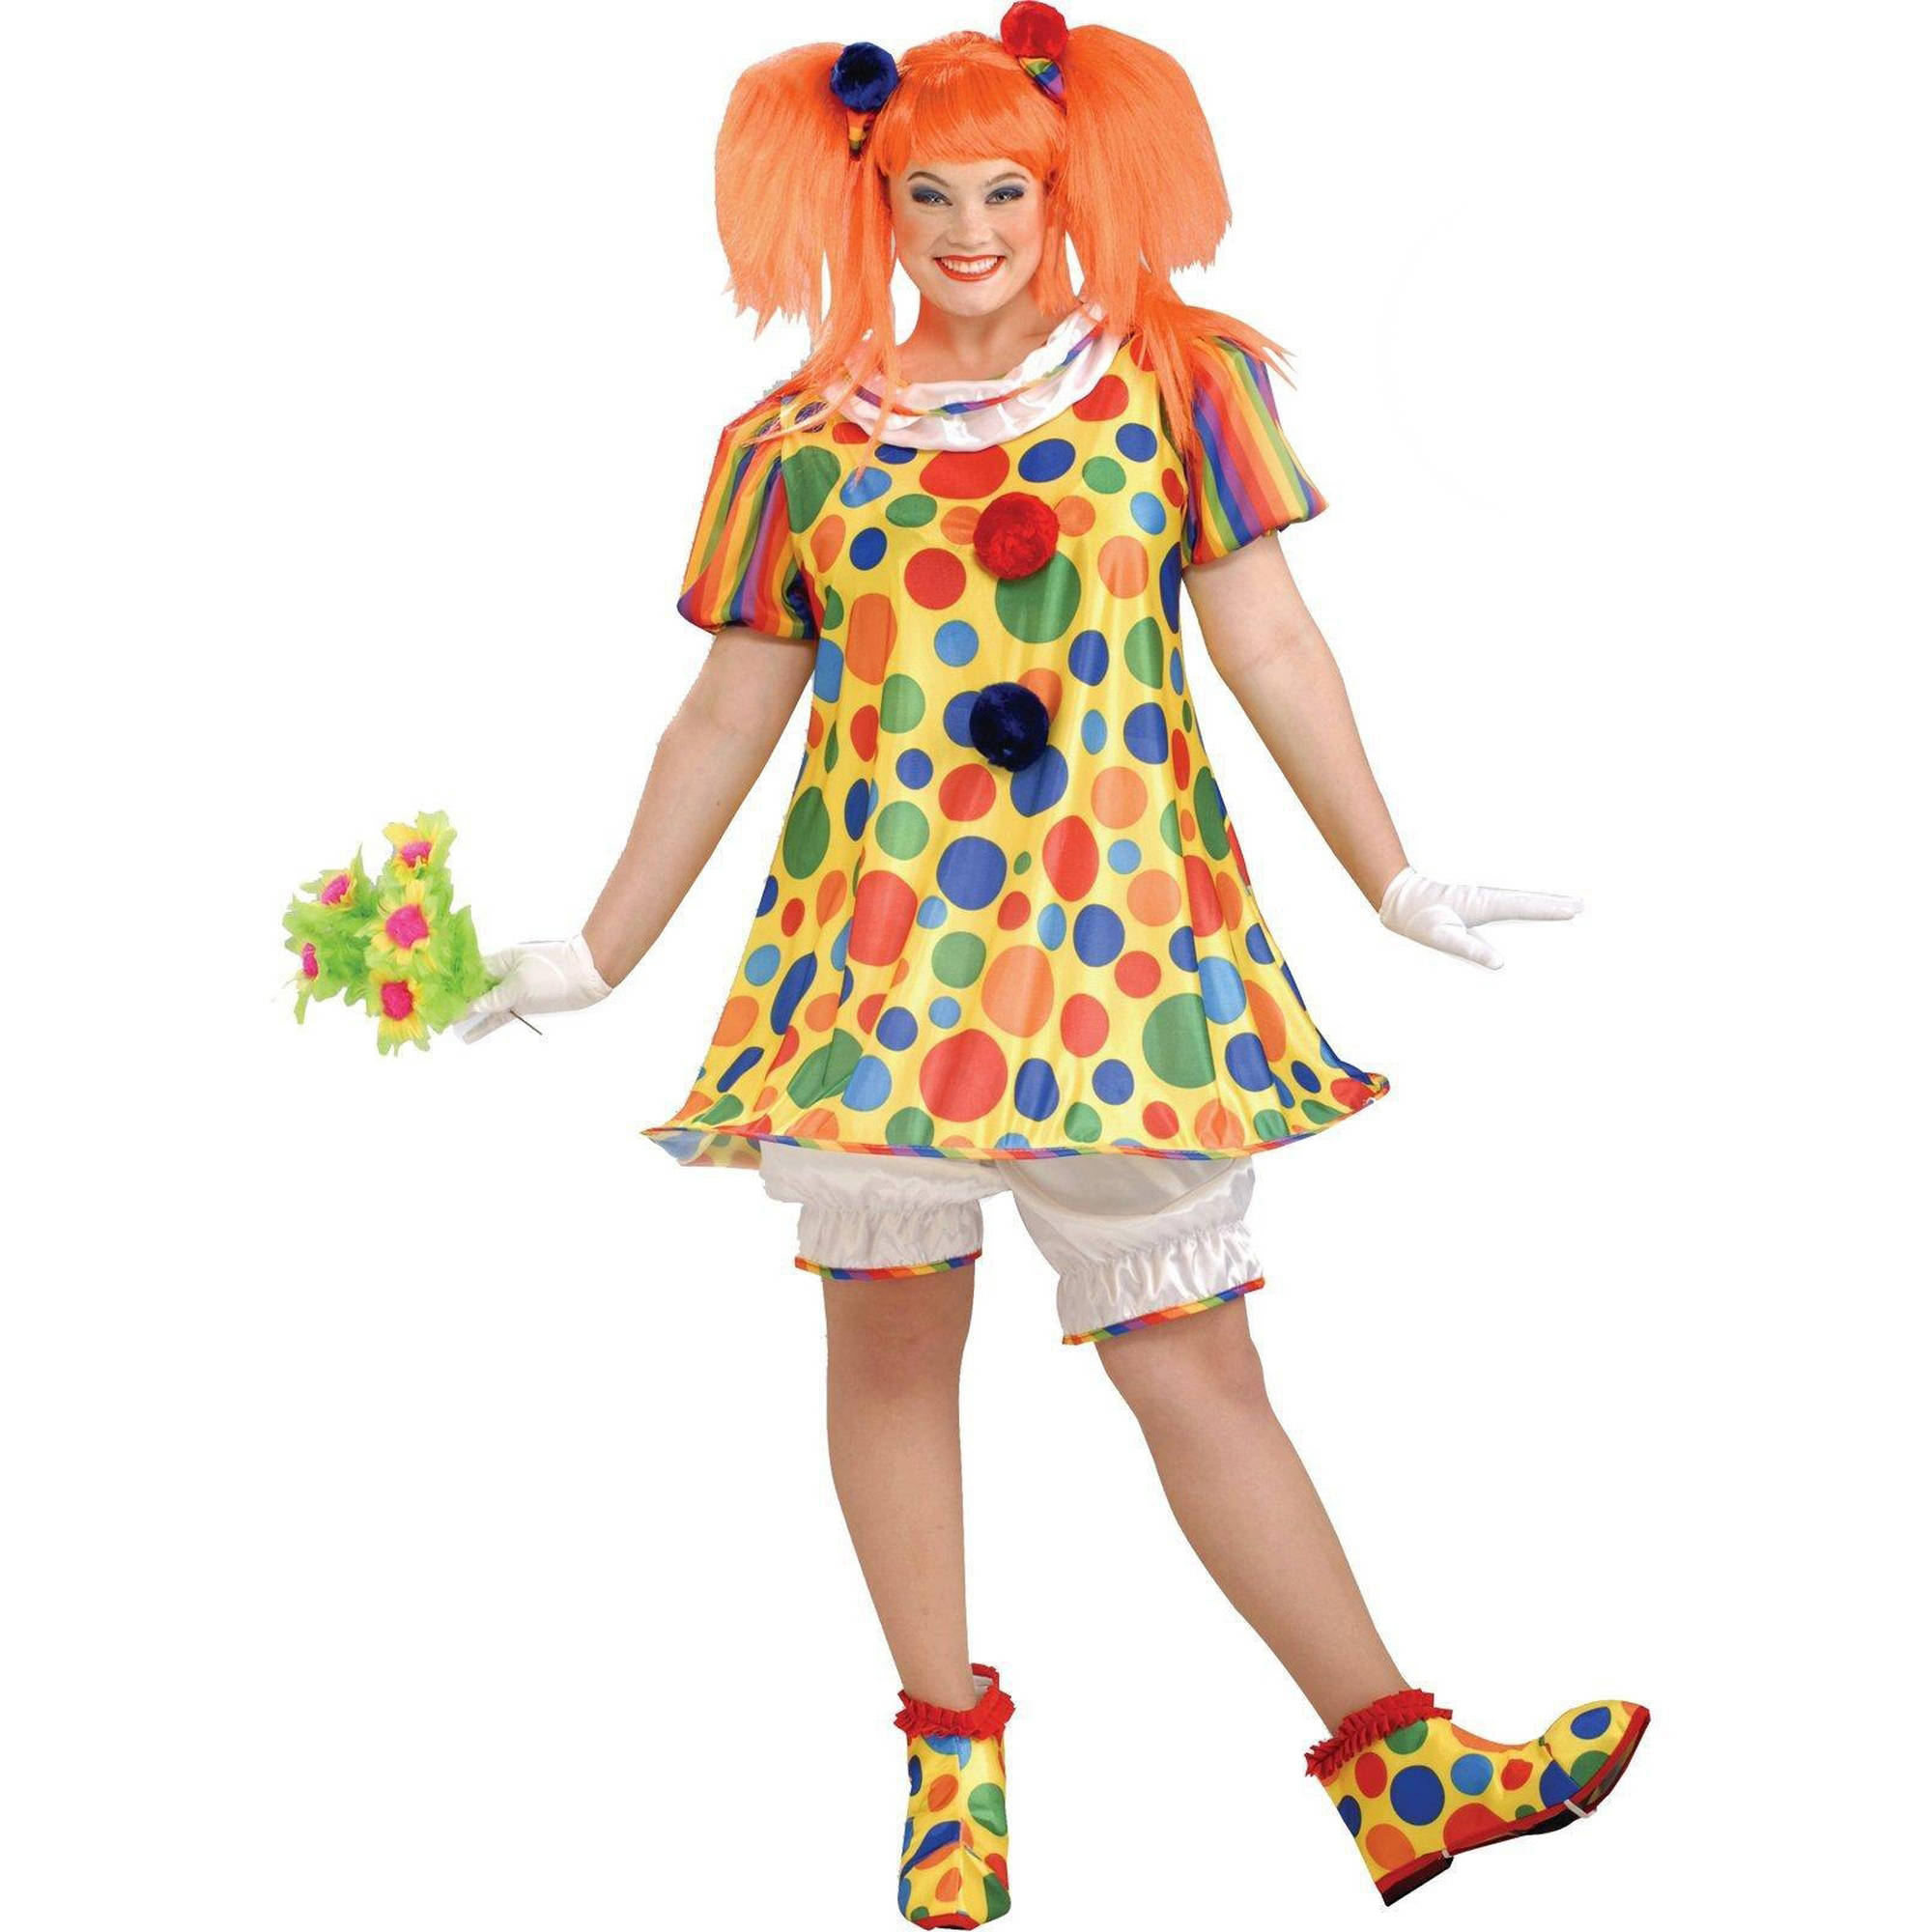 Giggles The Clown Women's Plus Size Adult Halloween Costume, Women's Plus